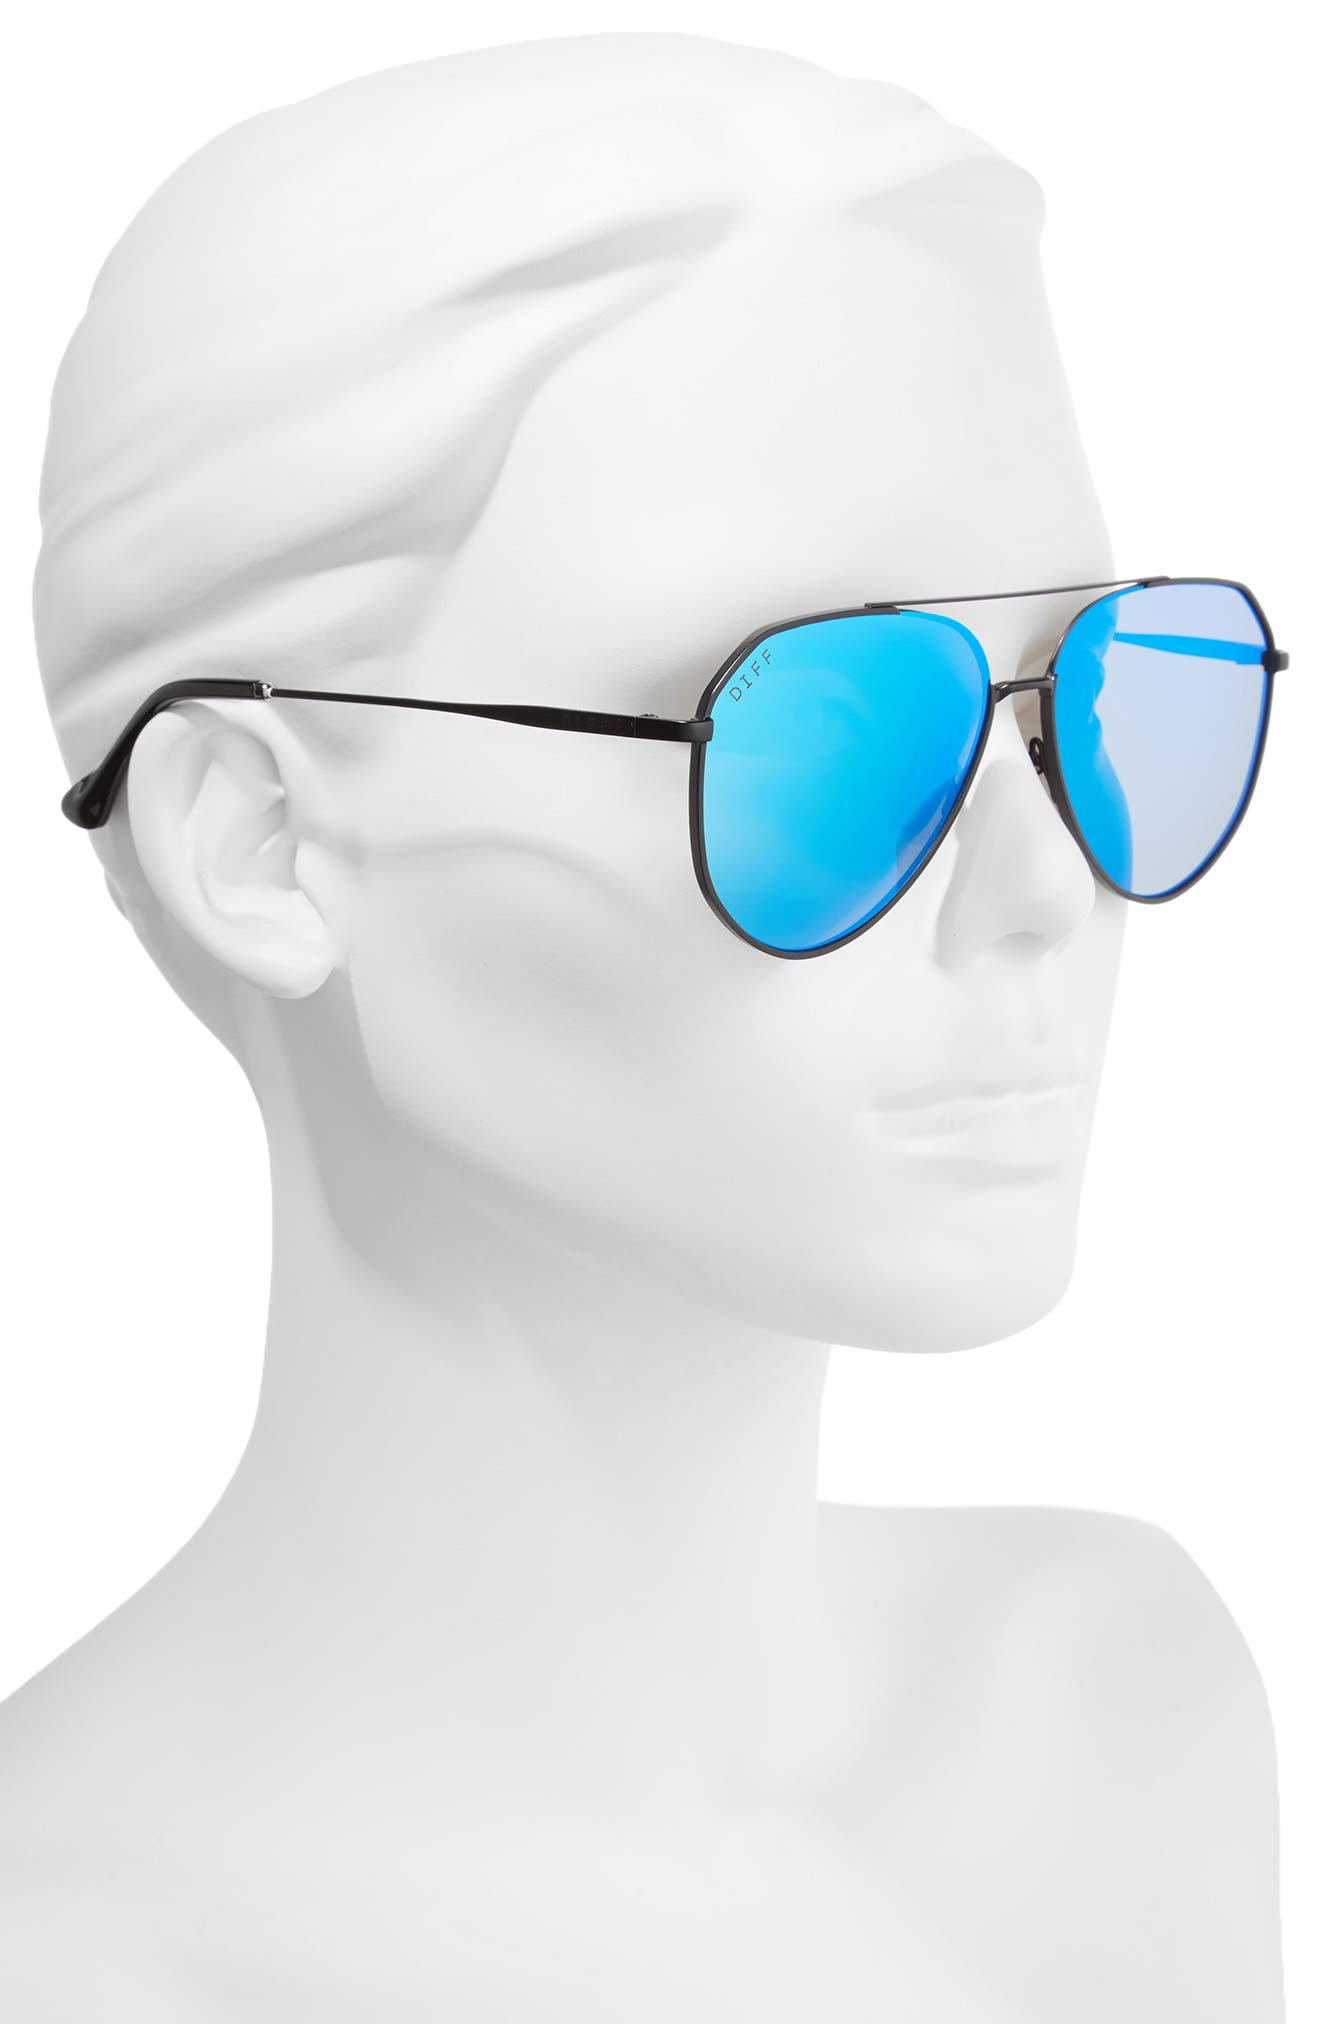 Dash 58mm Aviator Sunglasses,                             Alternate thumbnail 2, color,                             003